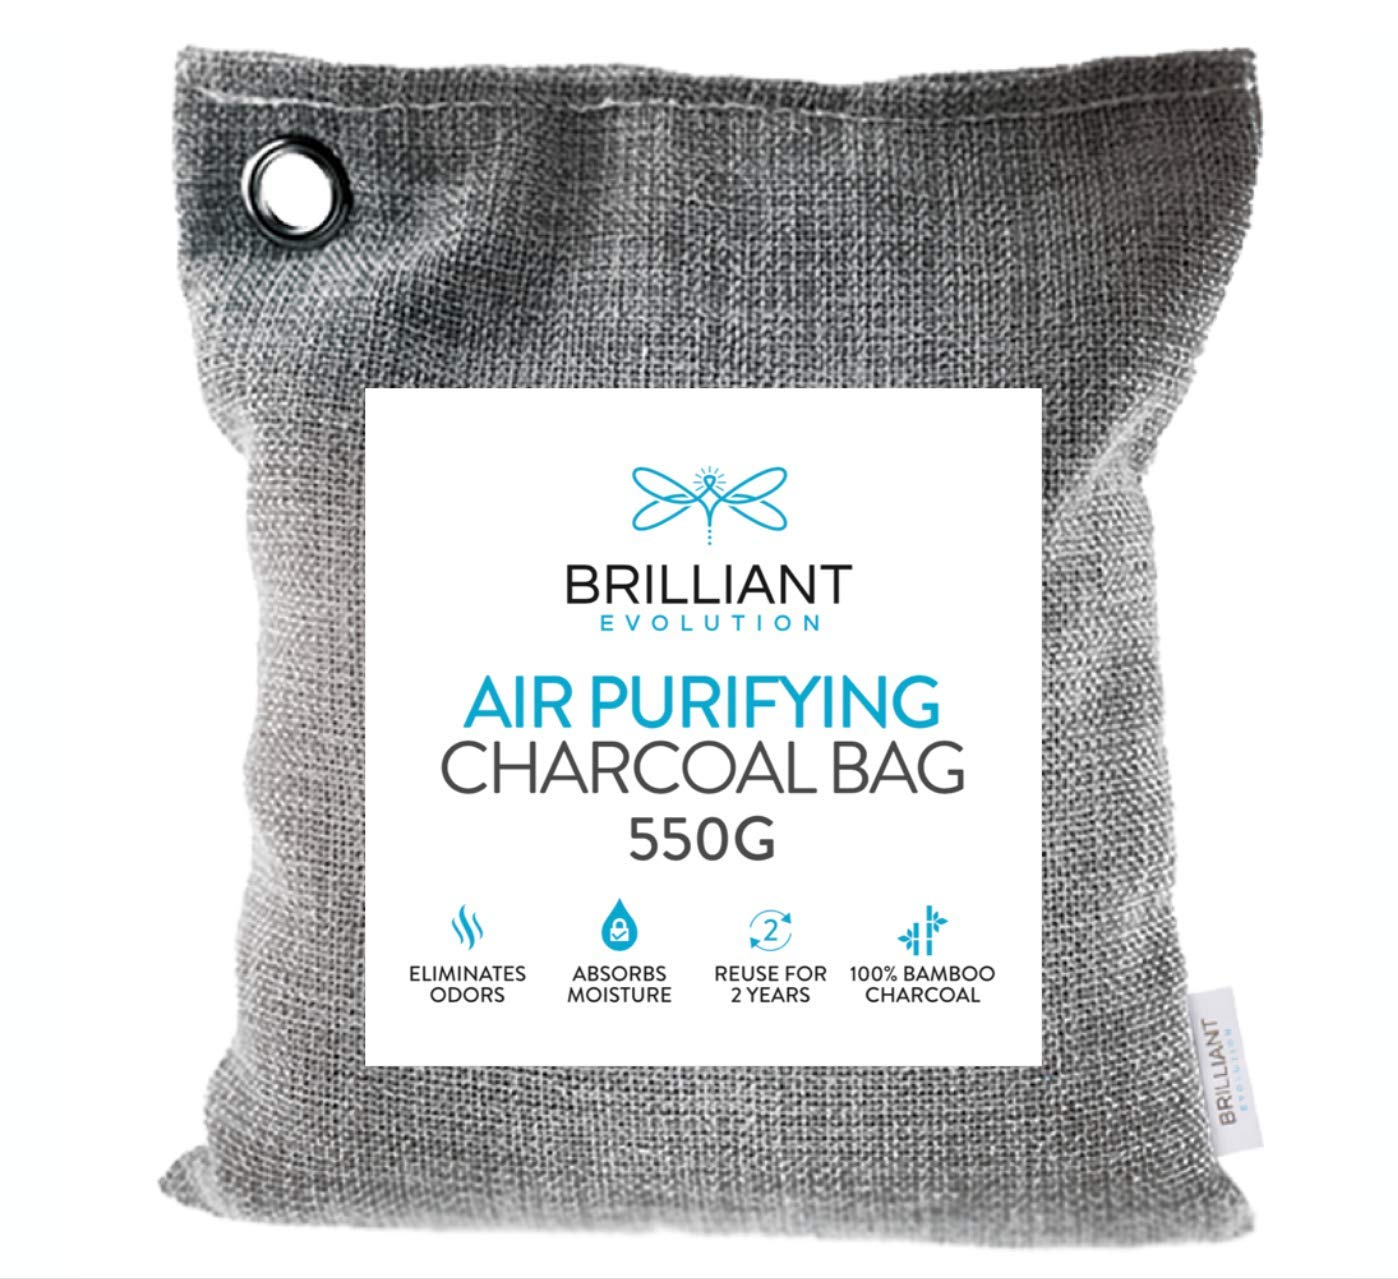 Brilliant Evolution BRRC206 Natural Bamboo Charcoal Large Air Purifying Bag, 550 Grams (1.2 lbs) of 100% Natural Bamboo Charcoal, Air Freshener That Eliminates Odors and Absorbs Moisture London Johnson